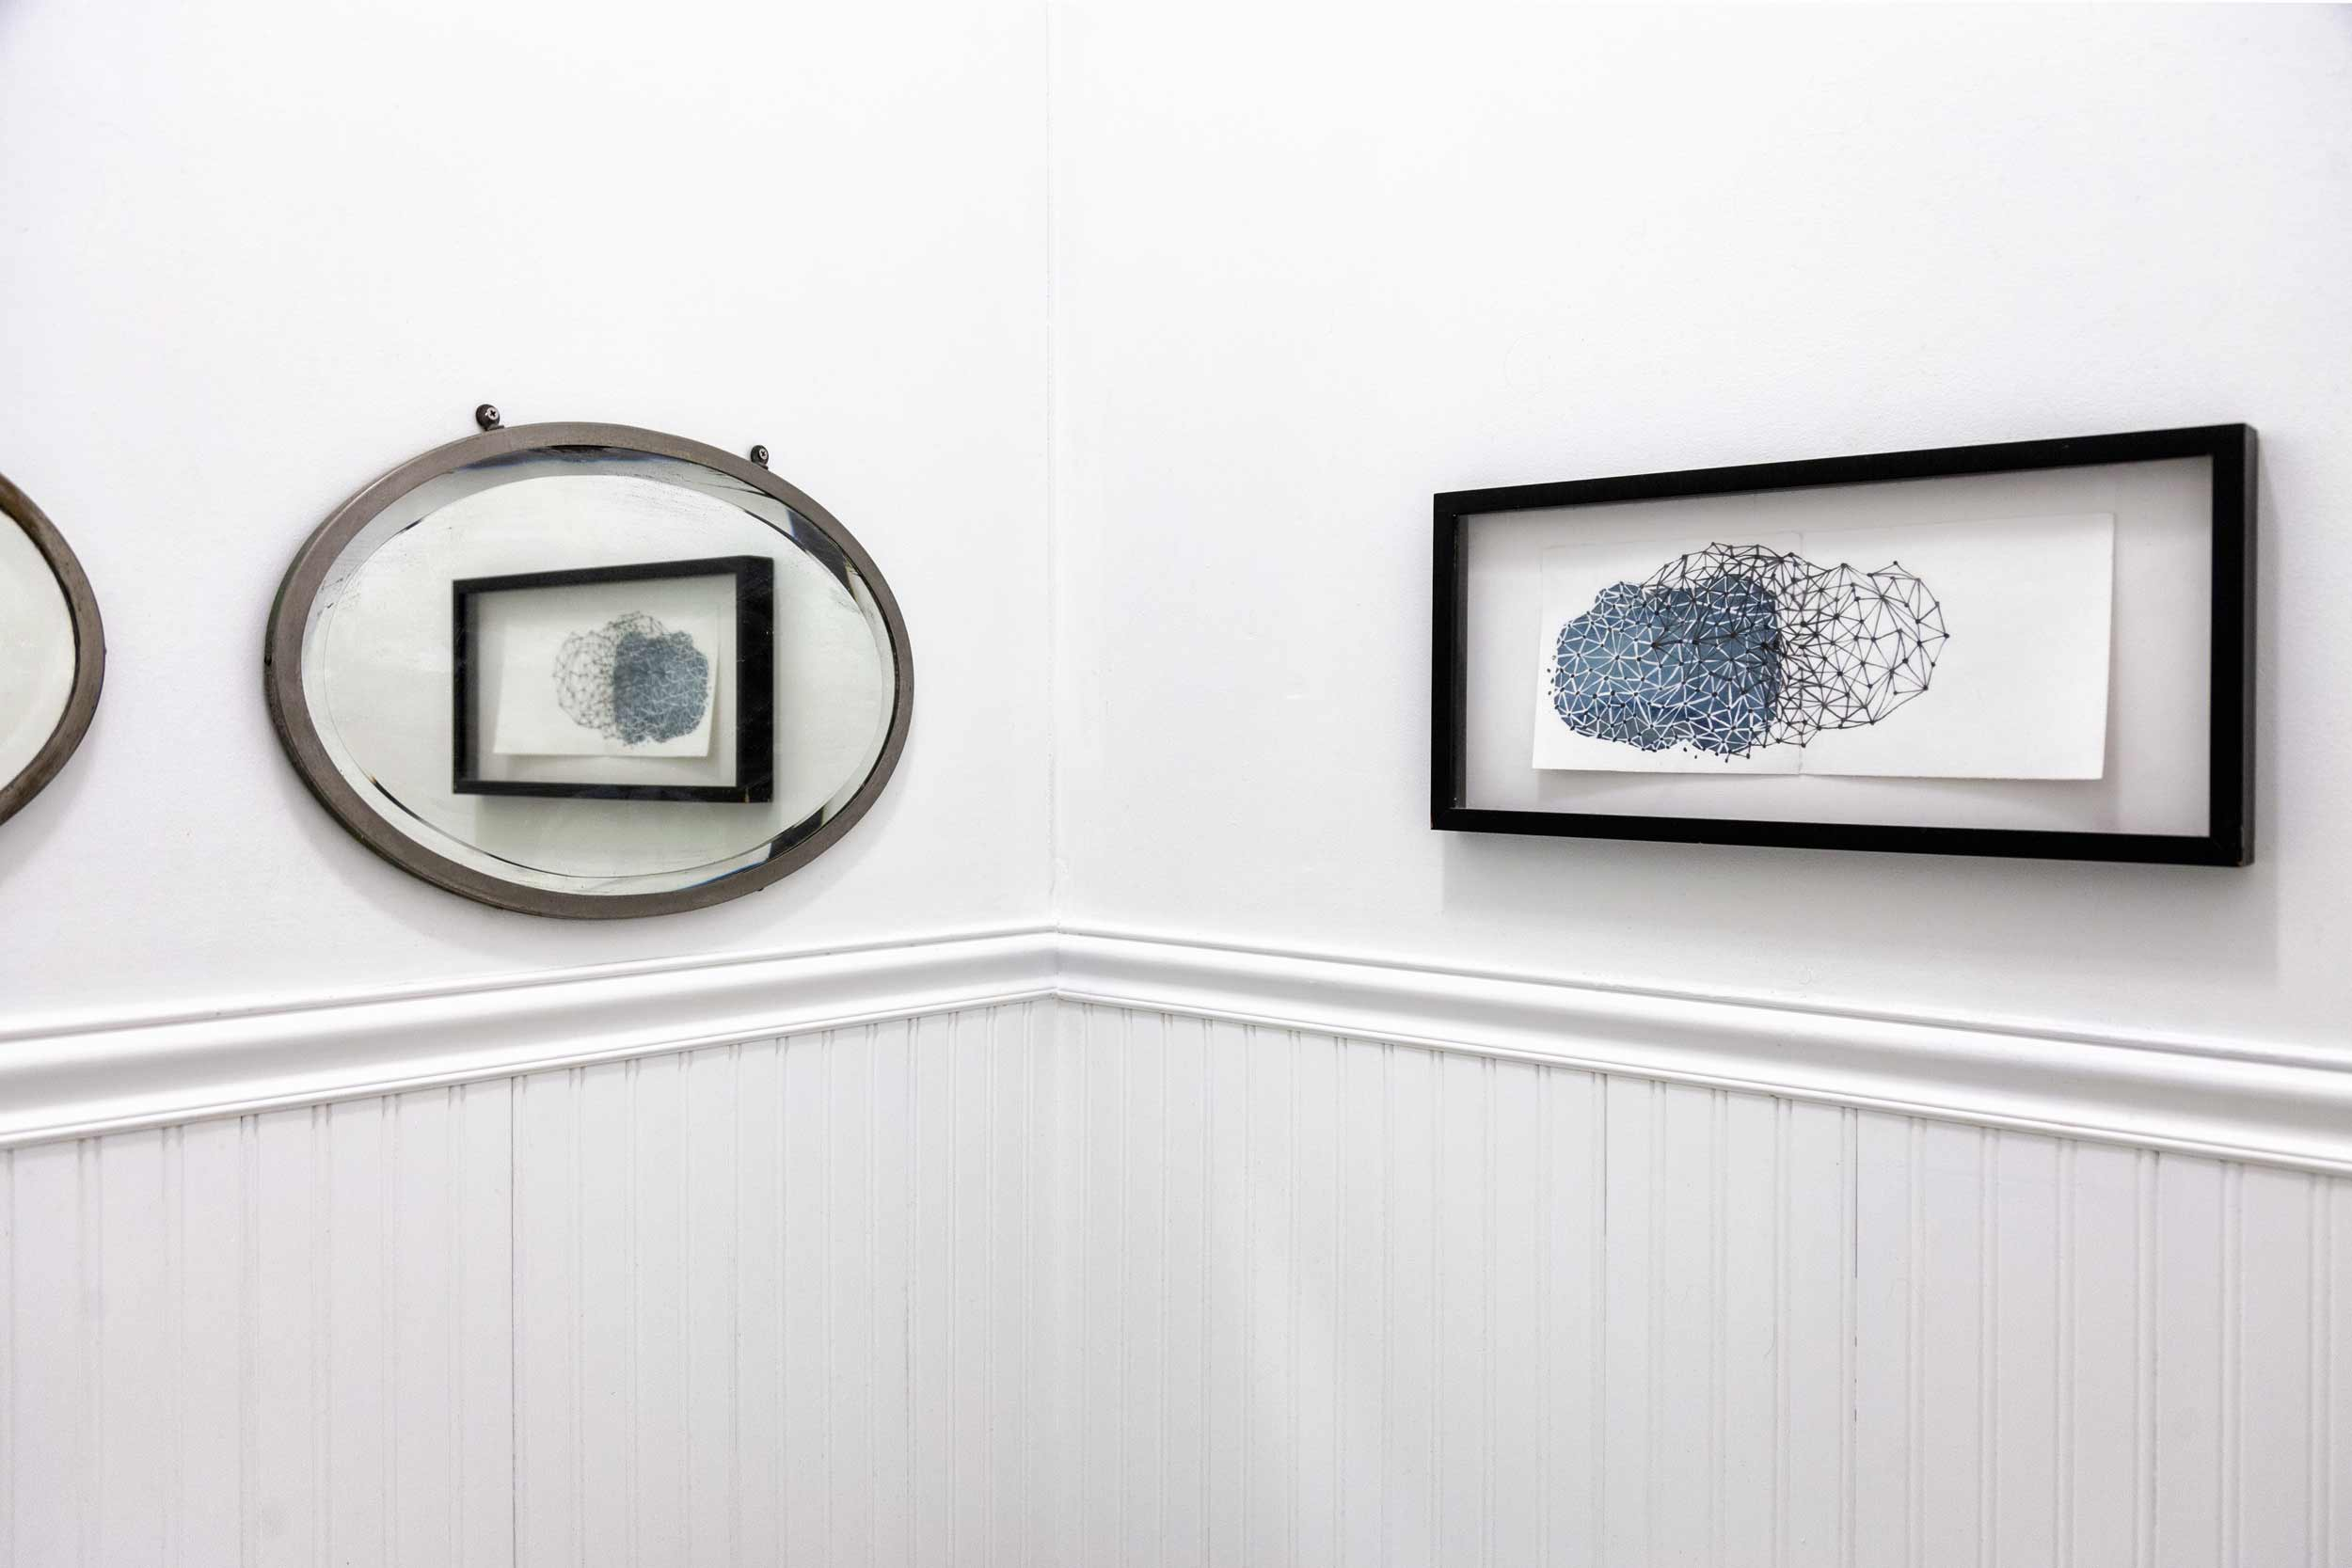 In the guest bathroom, a vintage mirror and a drawing by Anna Hepler.